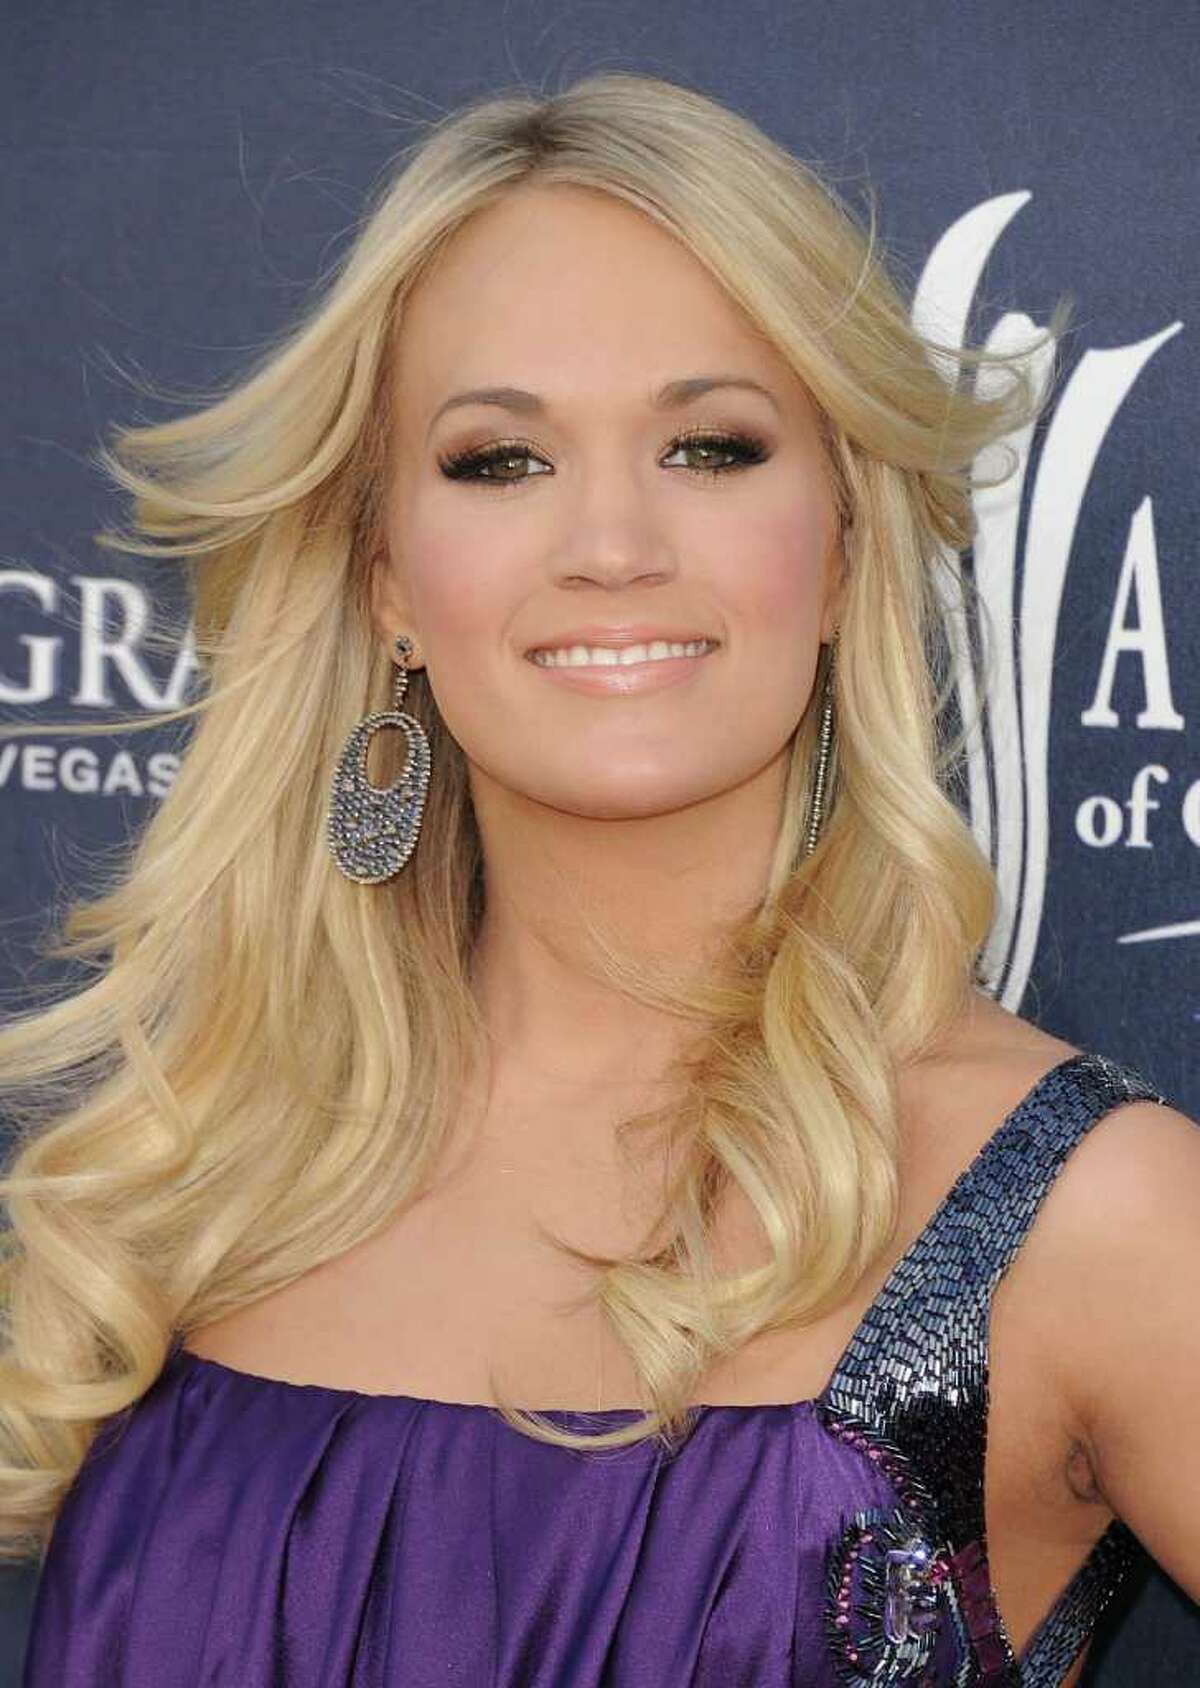 Singer Carrie Underwood arrives at the 46th Annual Academy Of Country Music Awards RAM Red Carpet held at the MGM Grand Garden Arena in Las Vegas, Nevada.